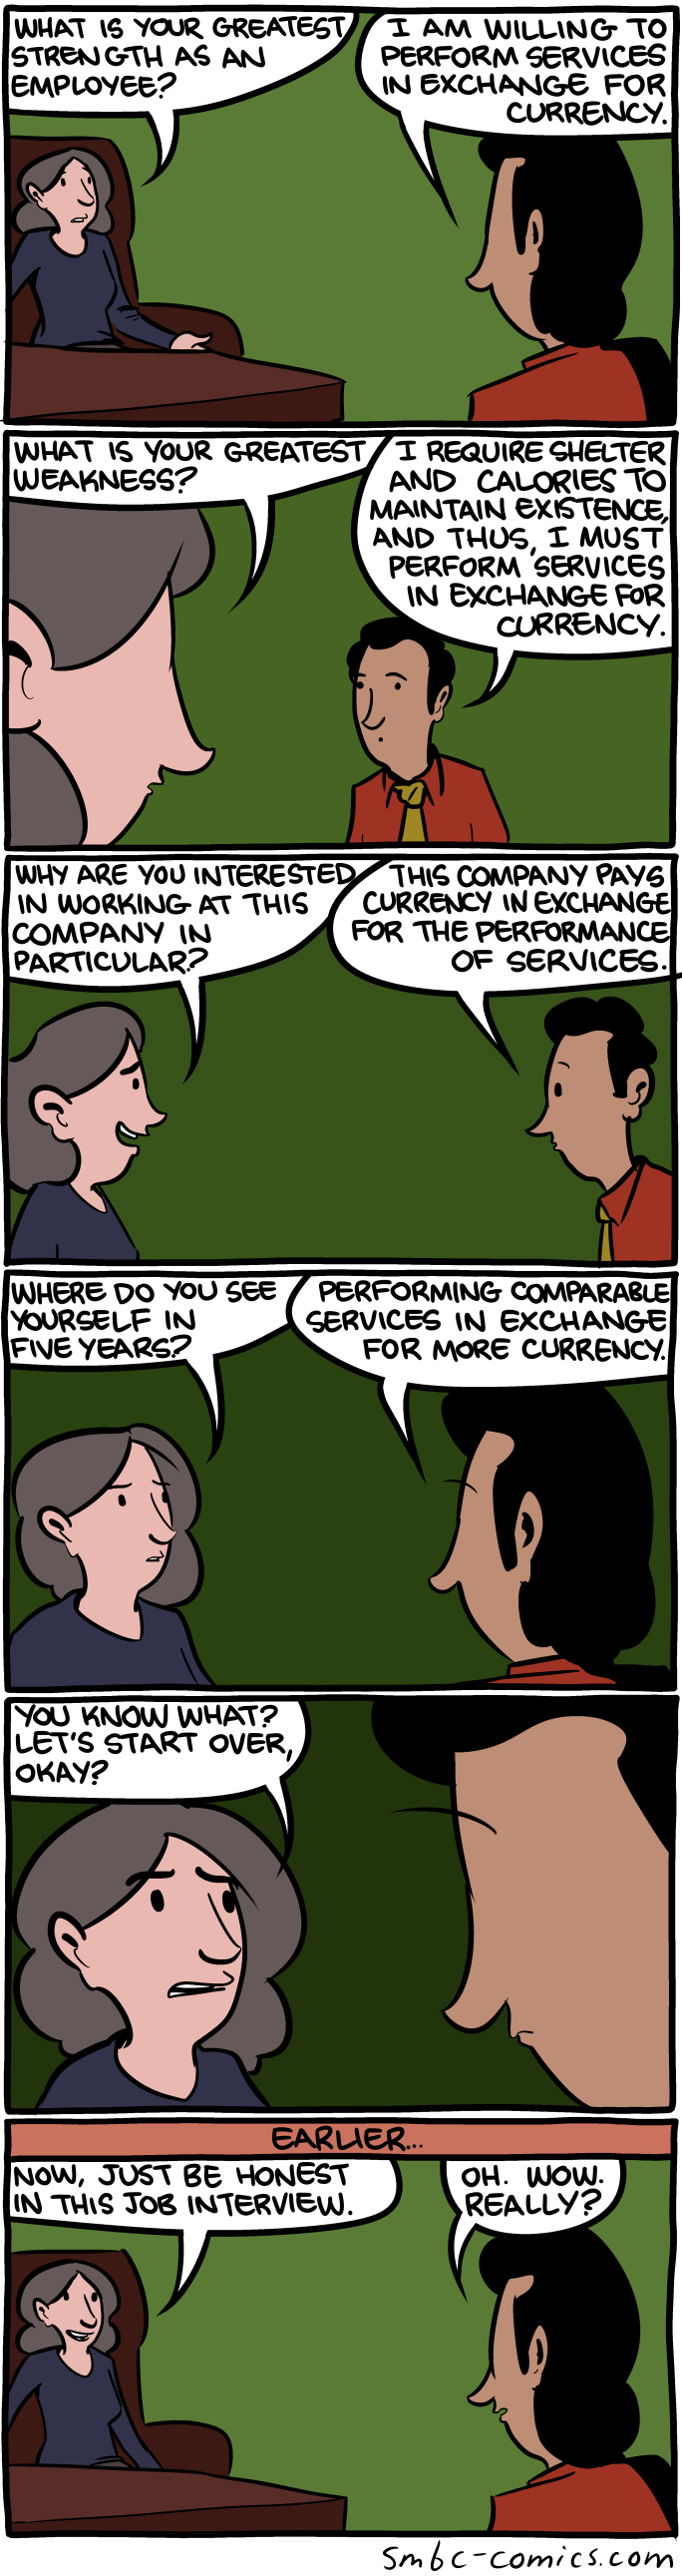 tirinha do Saturday Morning Breakfast Cereal sobre entrevista de emprego